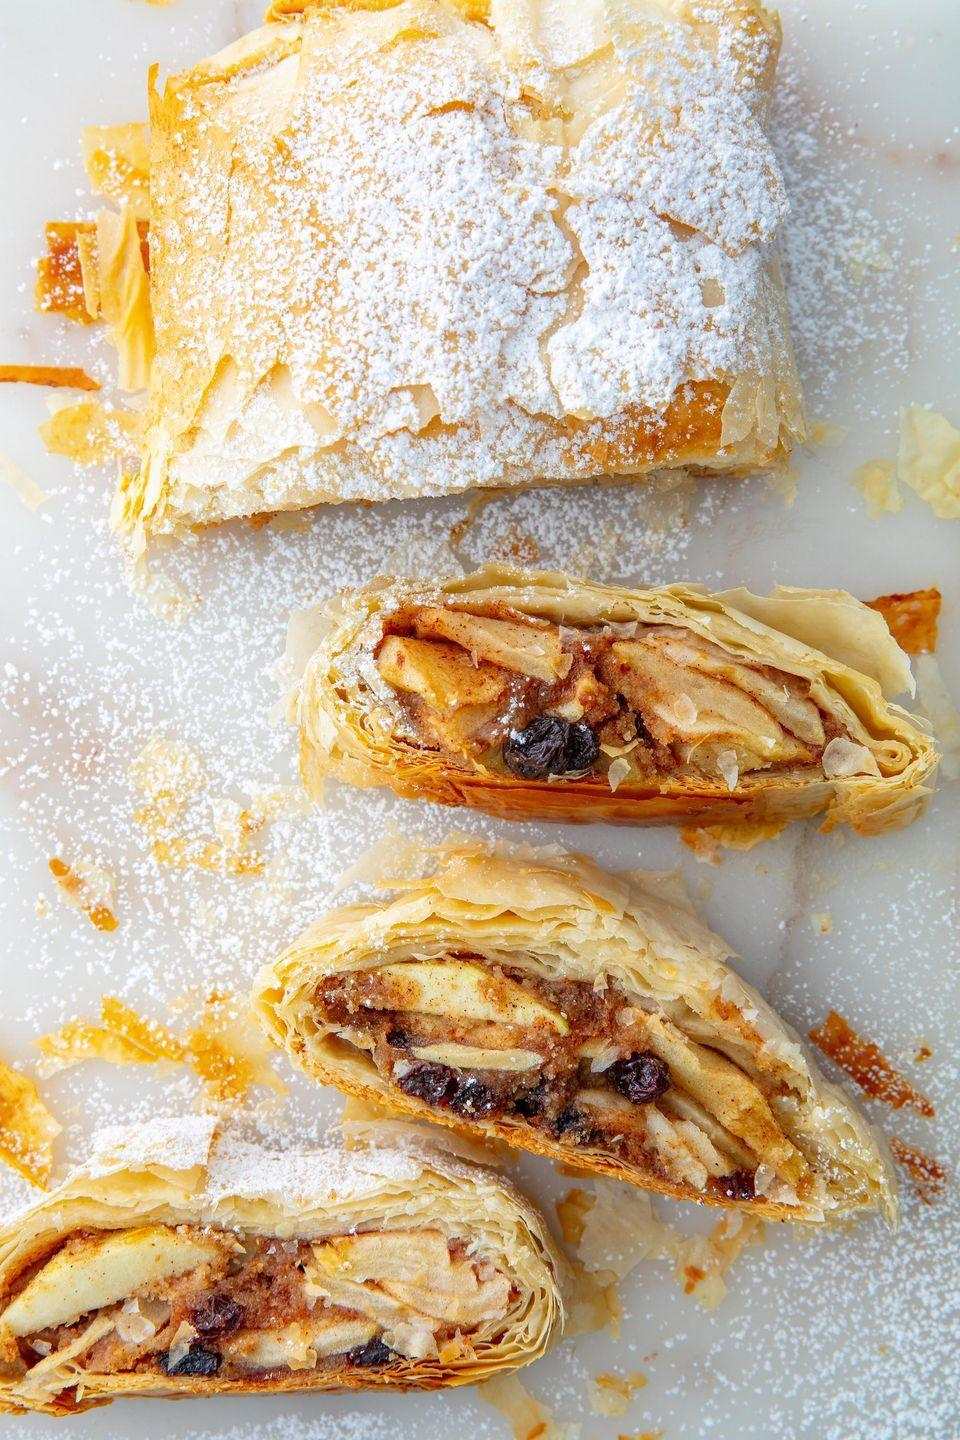 """<p>What even is a strudel?! We'll tell you because we're obsessed: A layered pastry with a gooey filling. </p><p>Get the recipe from <a href=""""https://www.delish.com/cooking/recipe-ideas/a21971647/easy-apple-strudel-recipe/"""" rel=""""nofollow noopener"""" target=""""_blank"""" data-ylk=""""slk:Delish"""" class=""""link rapid-noclick-resp"""">Delish</a>.</p>"""